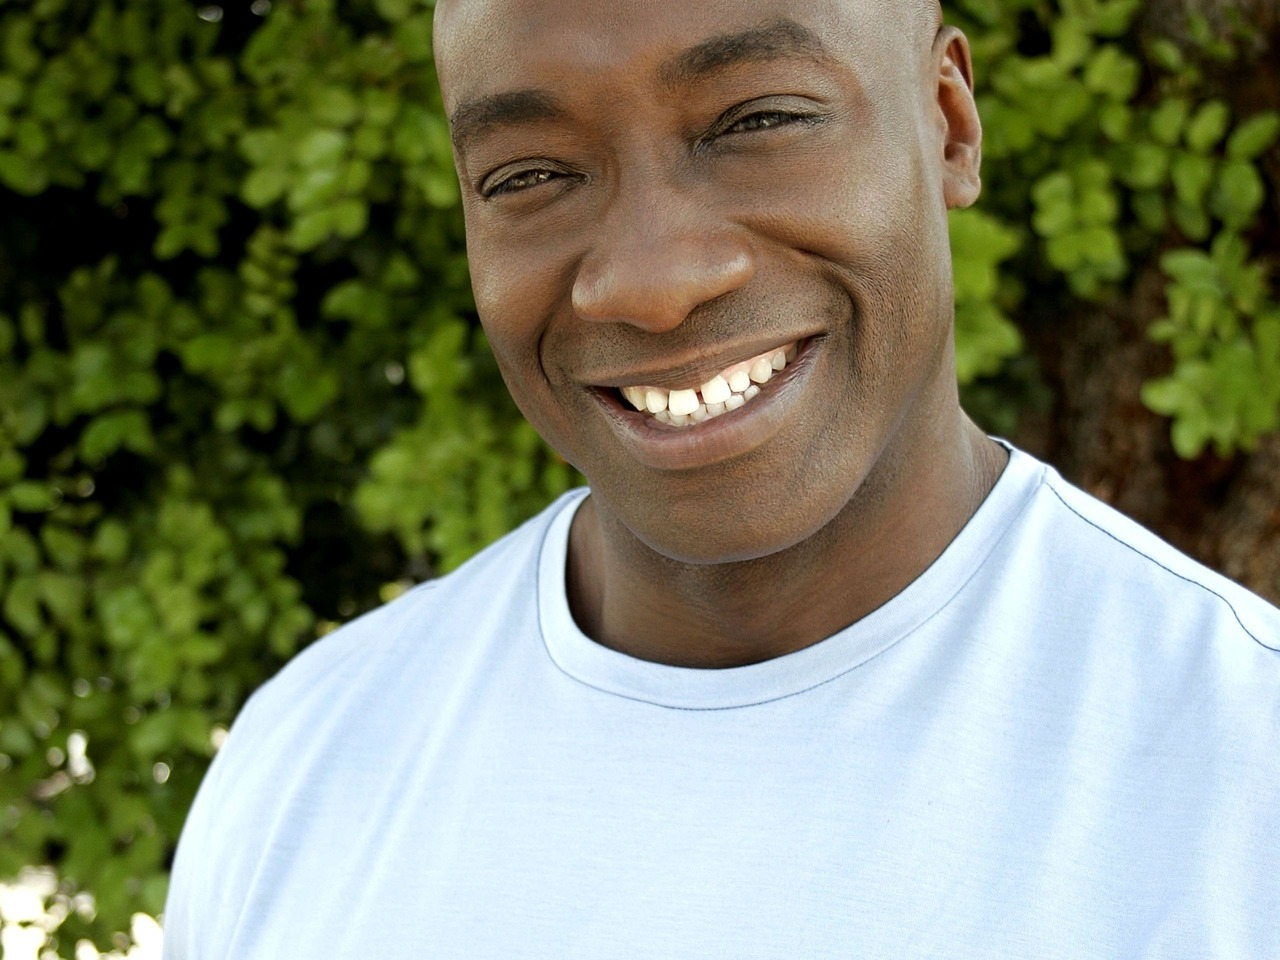 Actor Michael Clarke Duncan passed away today, two months after suffering a heart attack. Growing up to a single mother, Duncan held various low-end jobs before moving to Hollywood to pursue acting where he instead landed various body-guard jobs which included protecting Will Smith, L.L. Cool J, and even Biggie Smalls. The death of Biggie is what prompted him to leave body guarding. His role in the Green Mile starring Tom Hanks is what really launched his movie career. A famous vegetarian, Duncan is leaving behind a financee. Rest in peace, big guy.